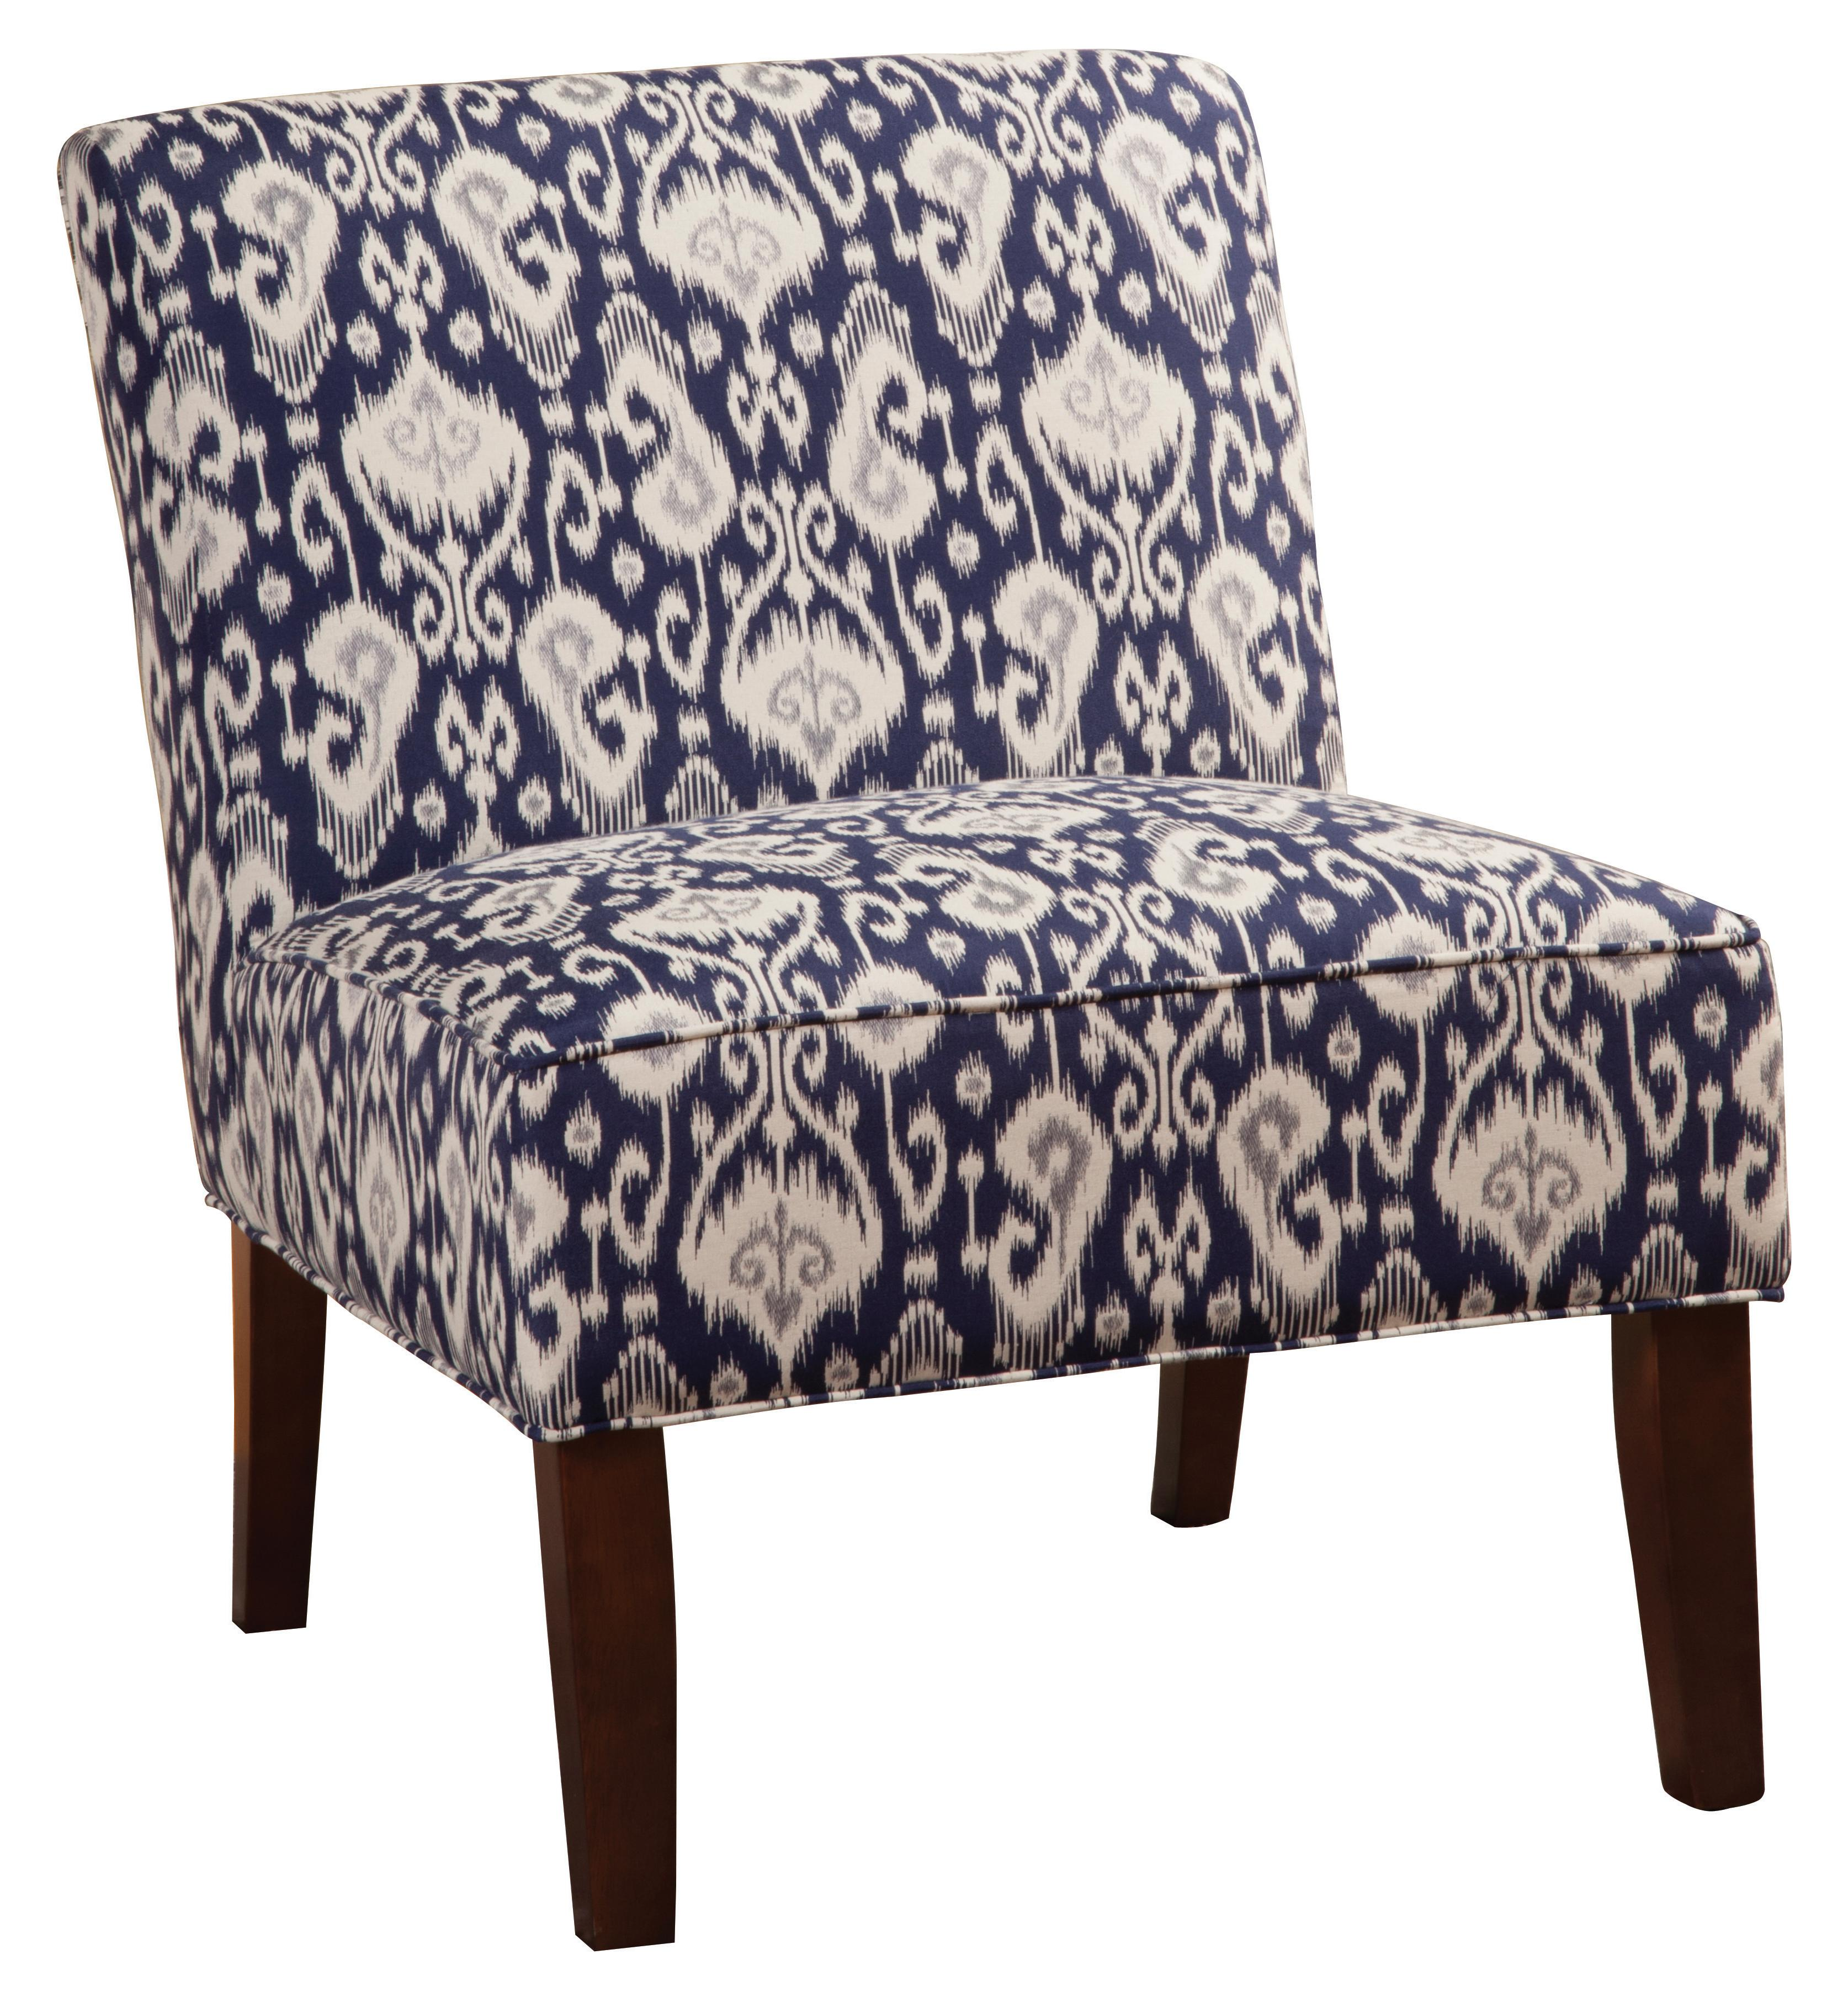 Attirant Accent Seating Armless Accent Chair ...